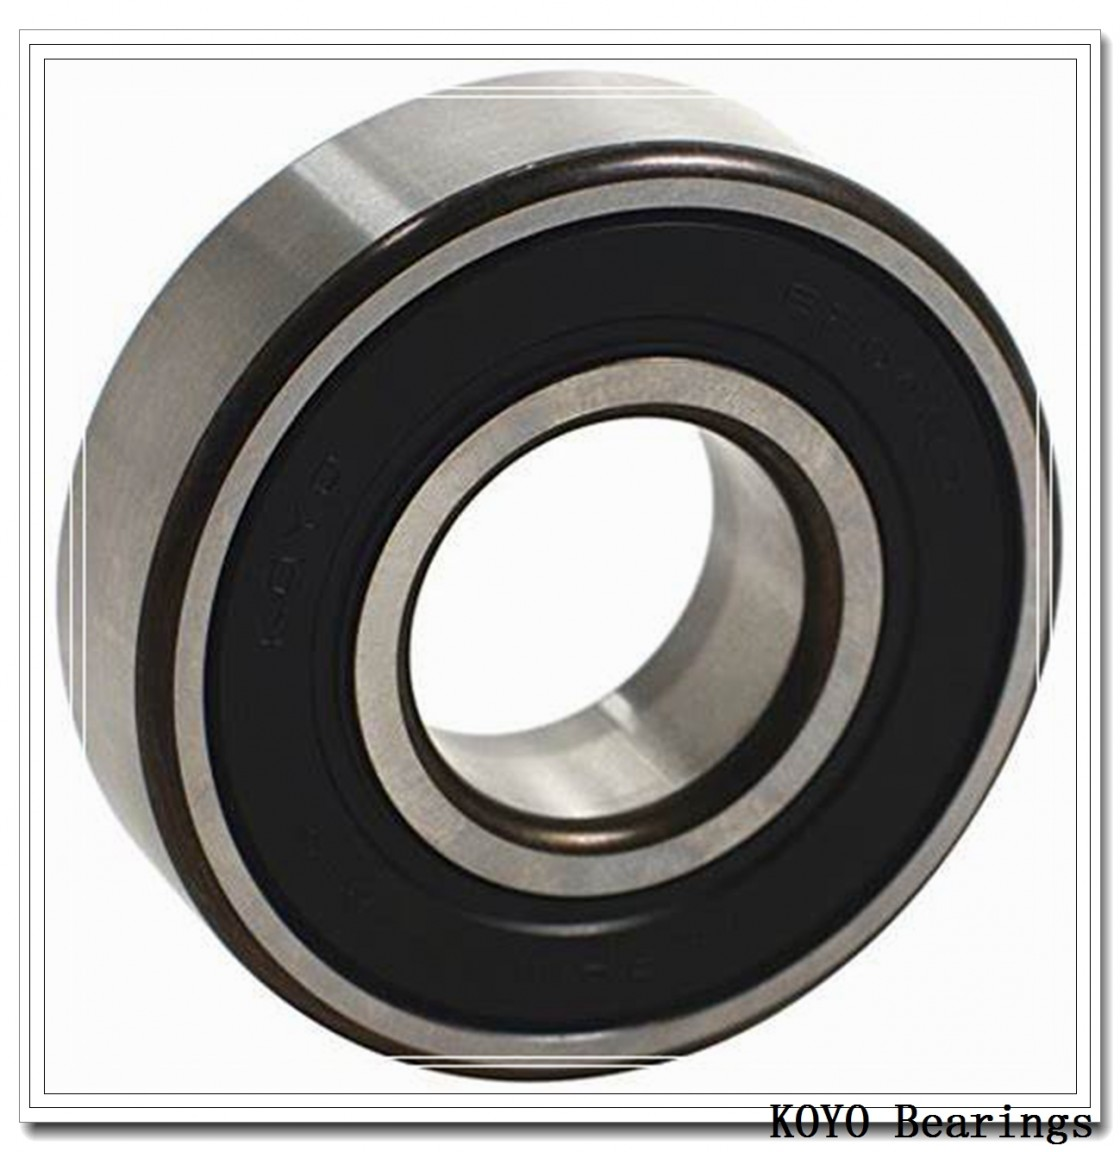 KOYO M-36121 needle roller bearings